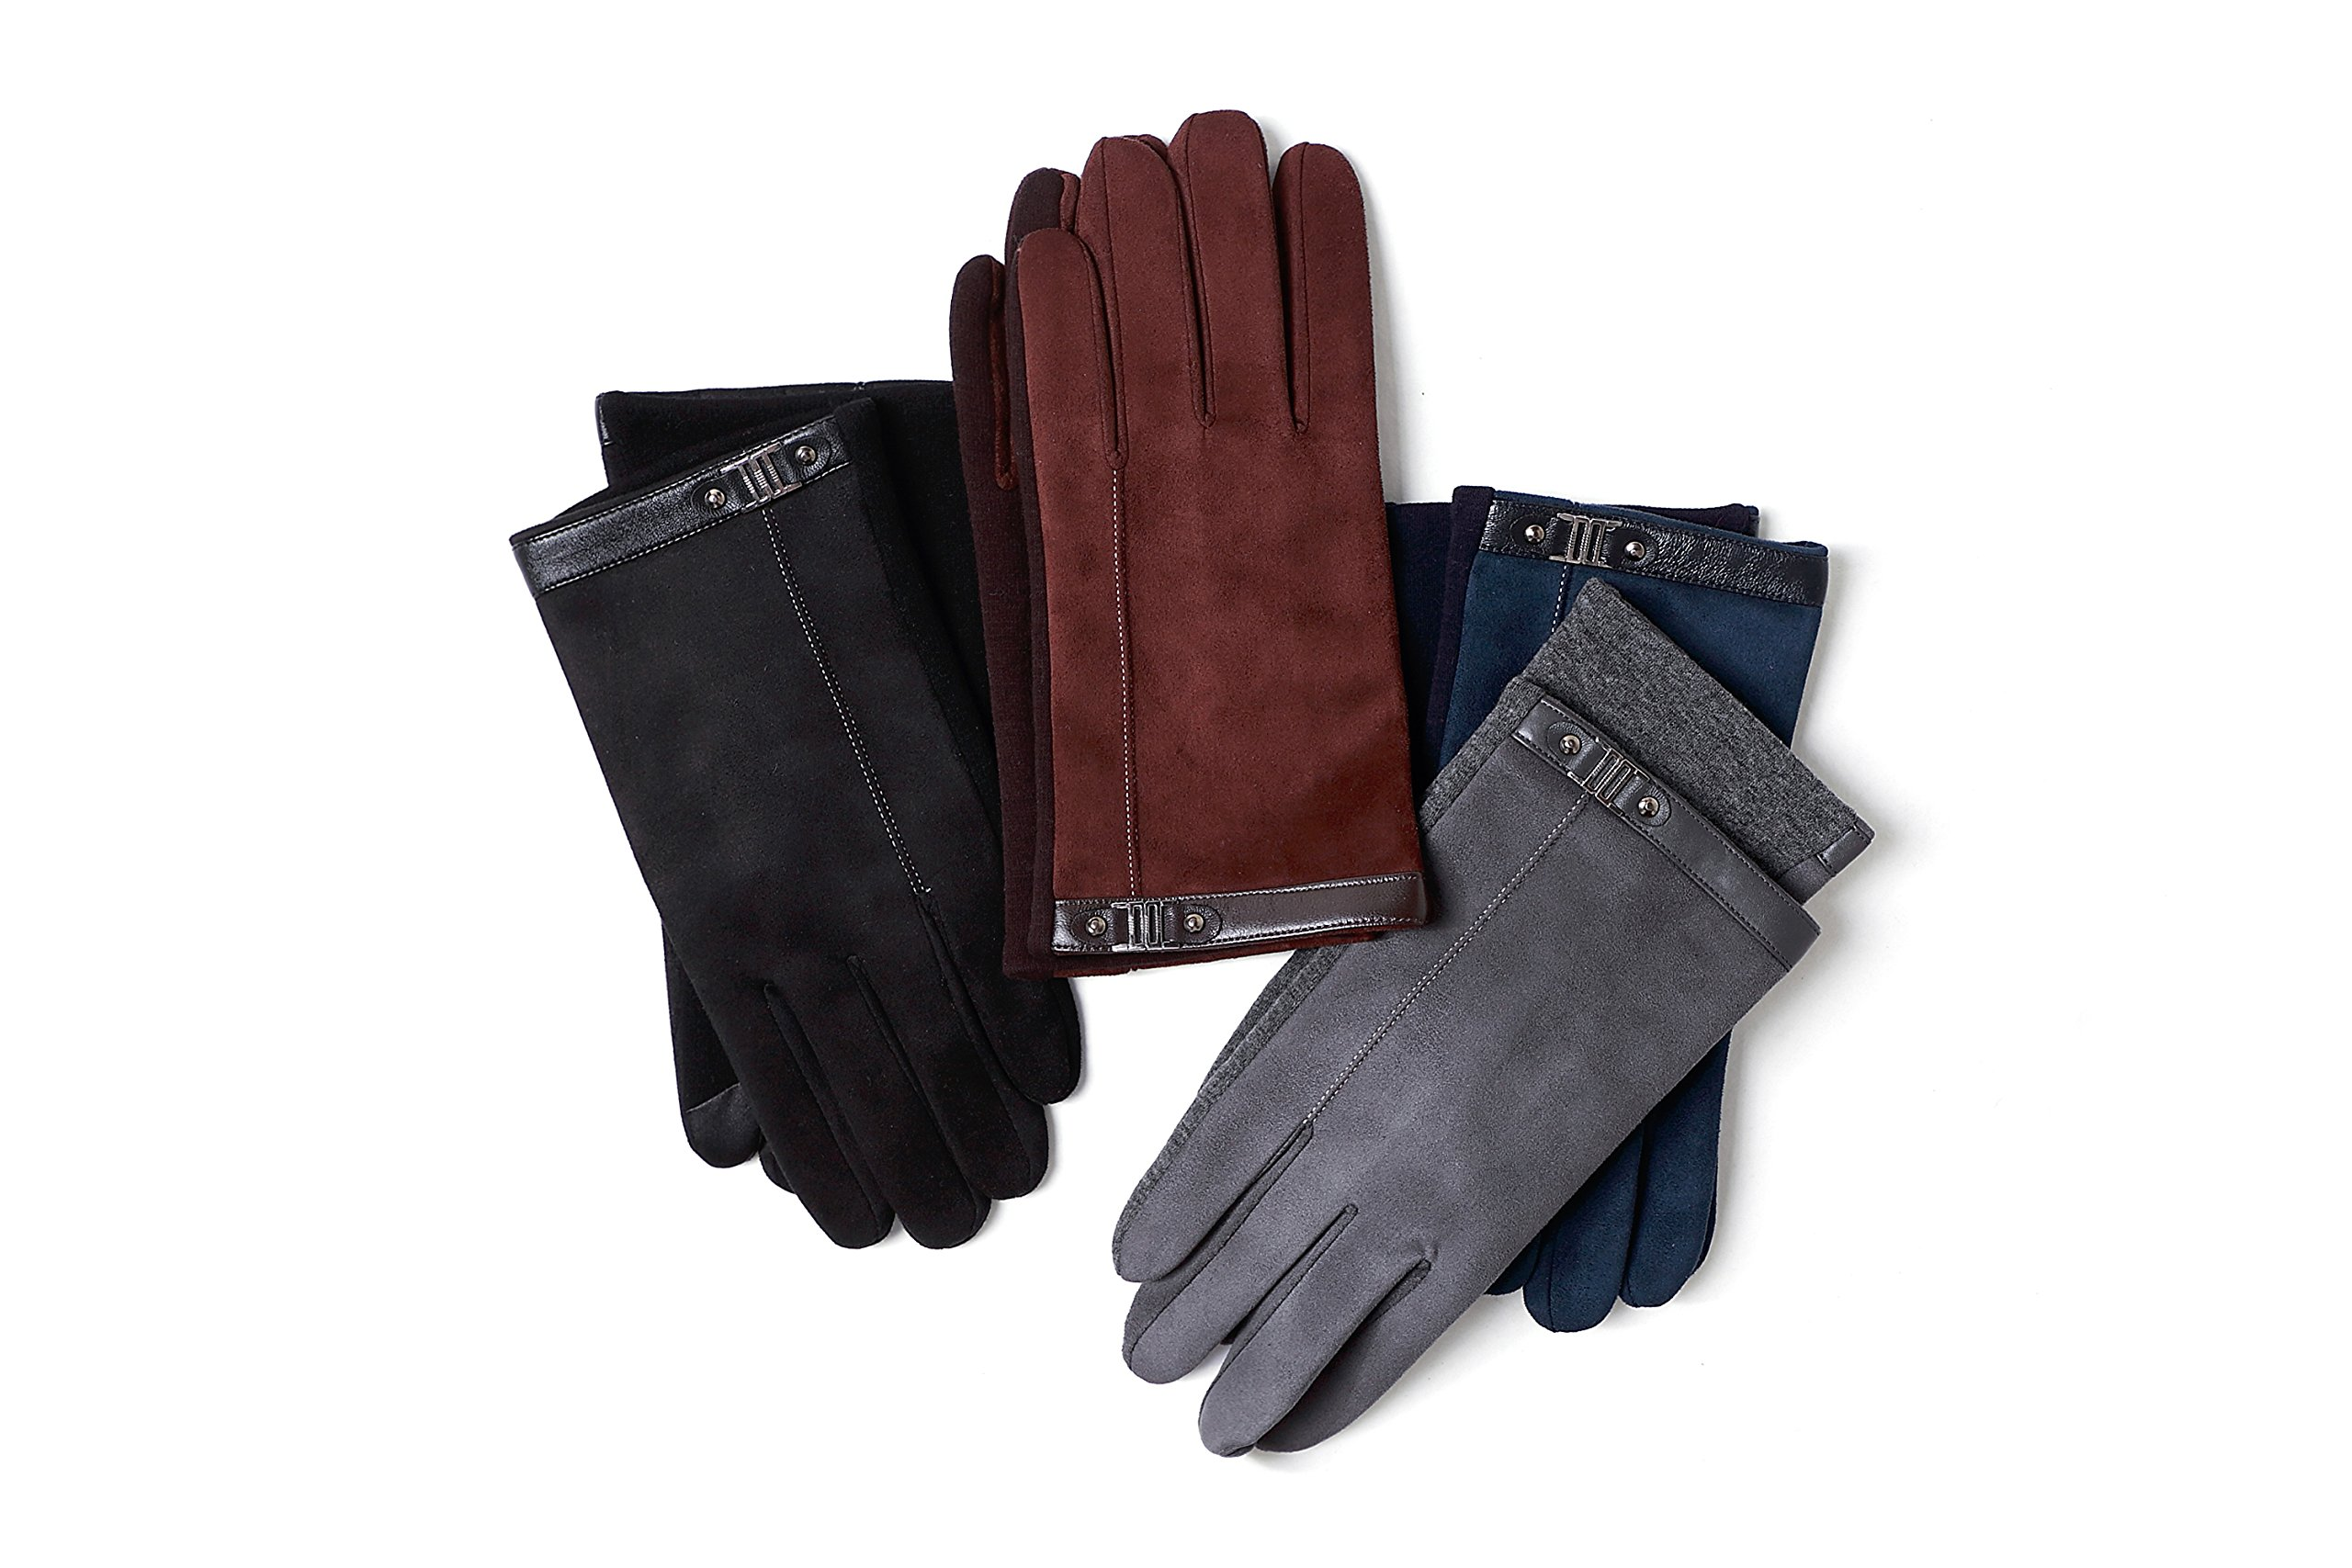 YISEVEN Men's Suede Chamois Leather Gloves Touchscreen Flat Design Plain Lined Luxury Soft Hand Warm Fur Heated Lining for Winter Spring Stylish Dress Work Xmas Gift and Motorcycle Driving, Blue M by YISEVEN (Image #6)